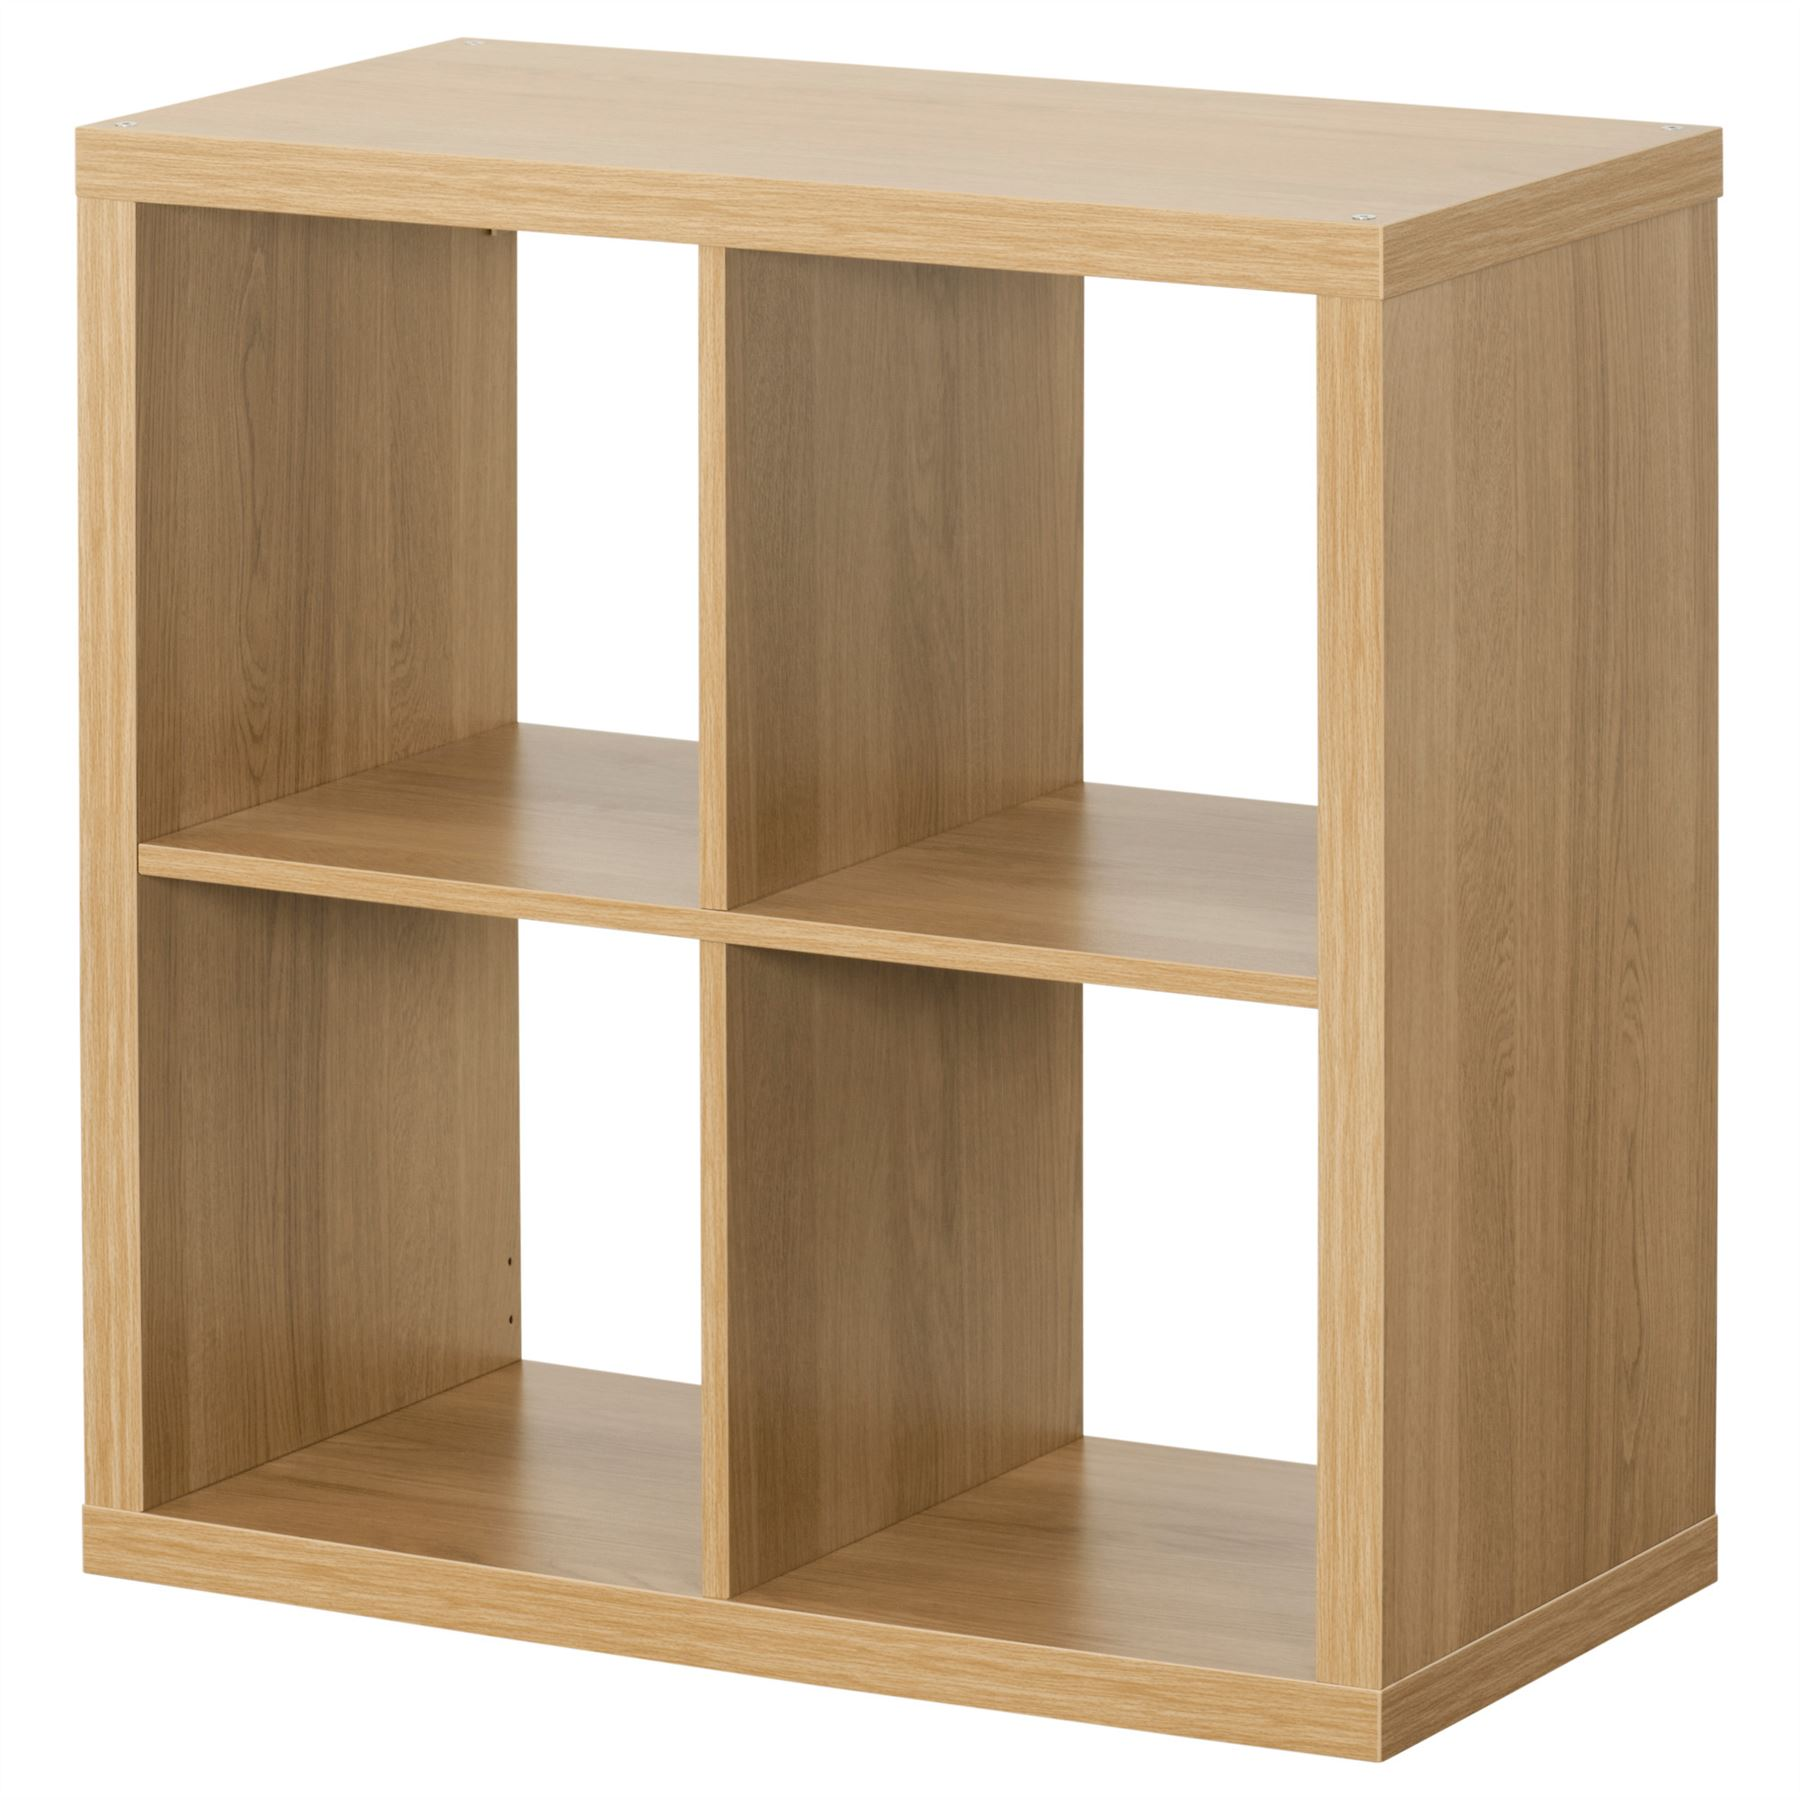 Ikea Kallax 4 Cube Storage Bookcase Square Shelving Unit Oak | eBay